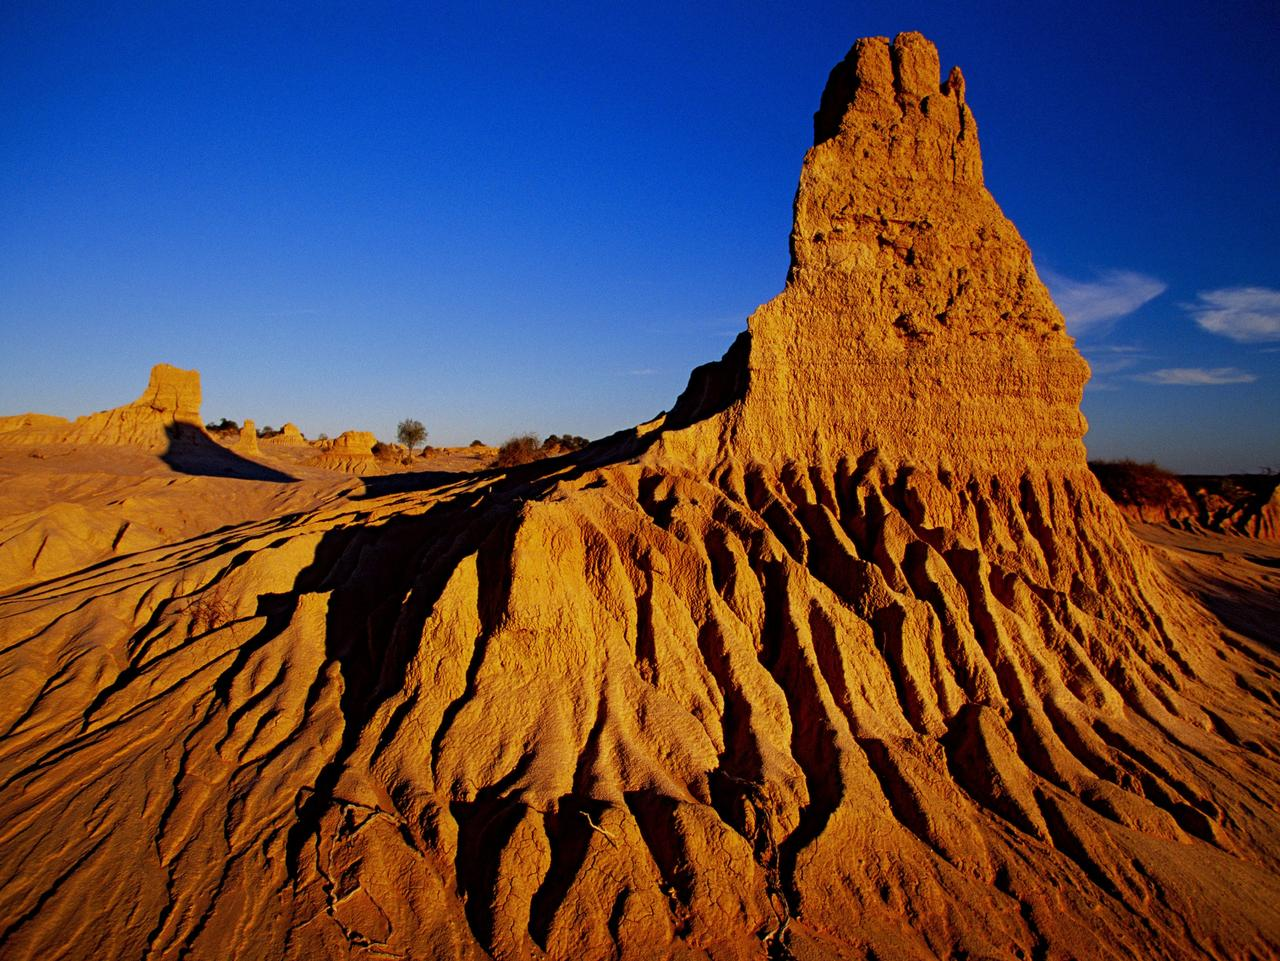 Walls of China in Mungo National Park at Willandra Lakes, NSW, one of the Top 10 Best-kept Secret Holiday Destinations/Attractions in NSW. Pic credit NSW Tourism/Don Fuchs.